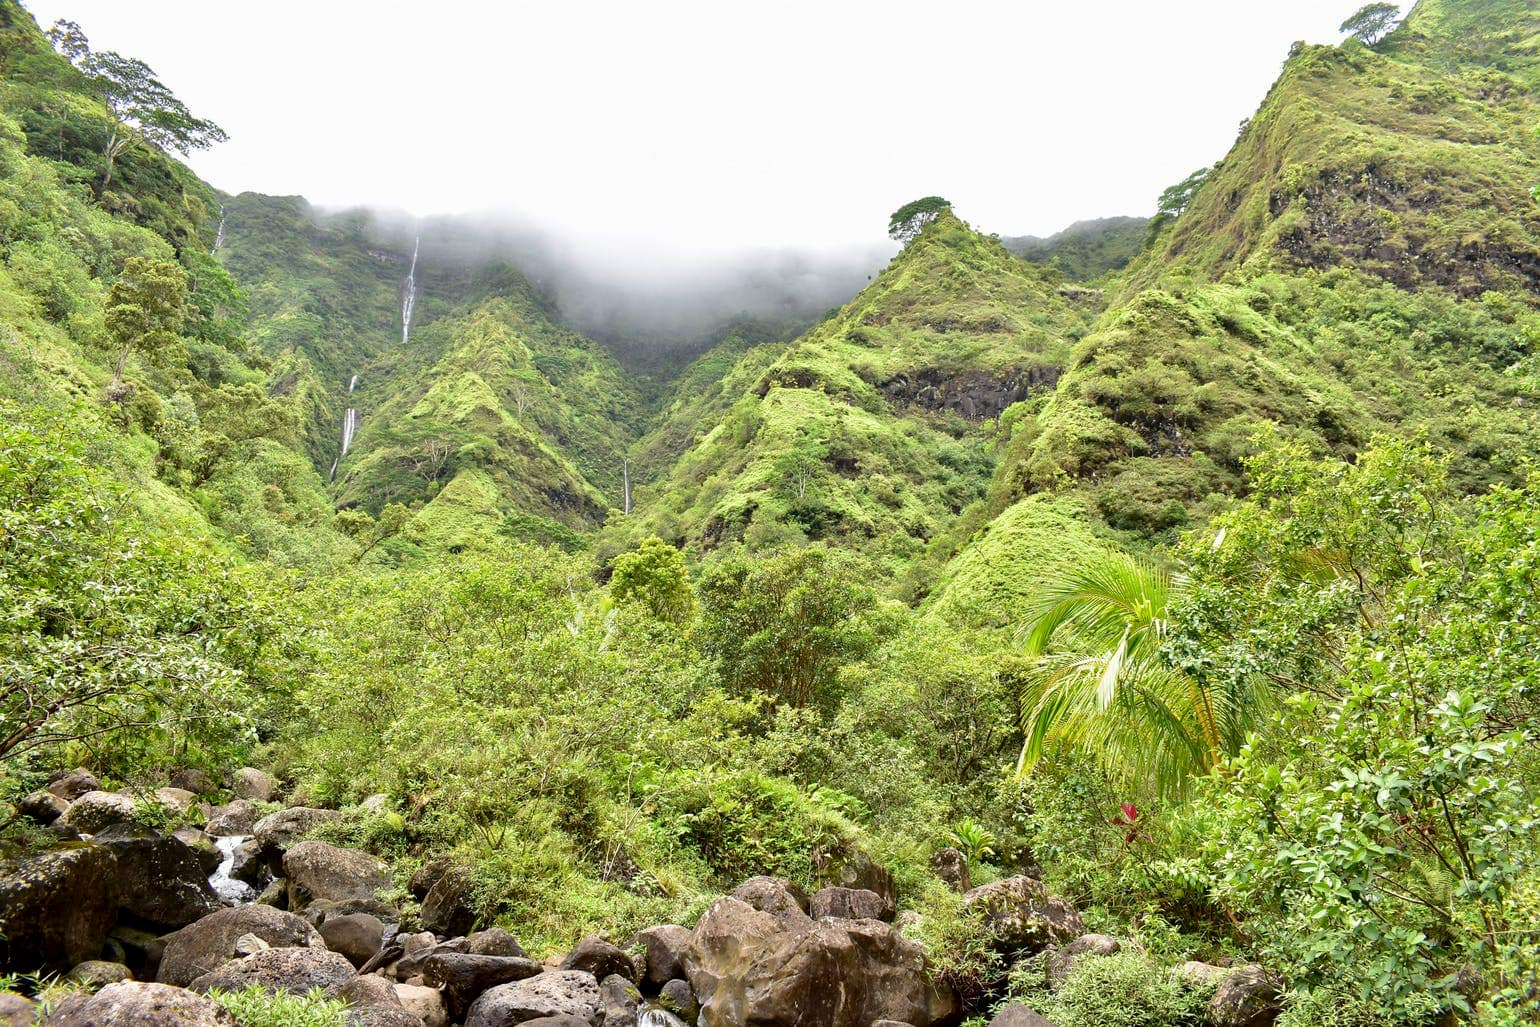 Lush green rainforests of Hawaii speckled with waterfalls.